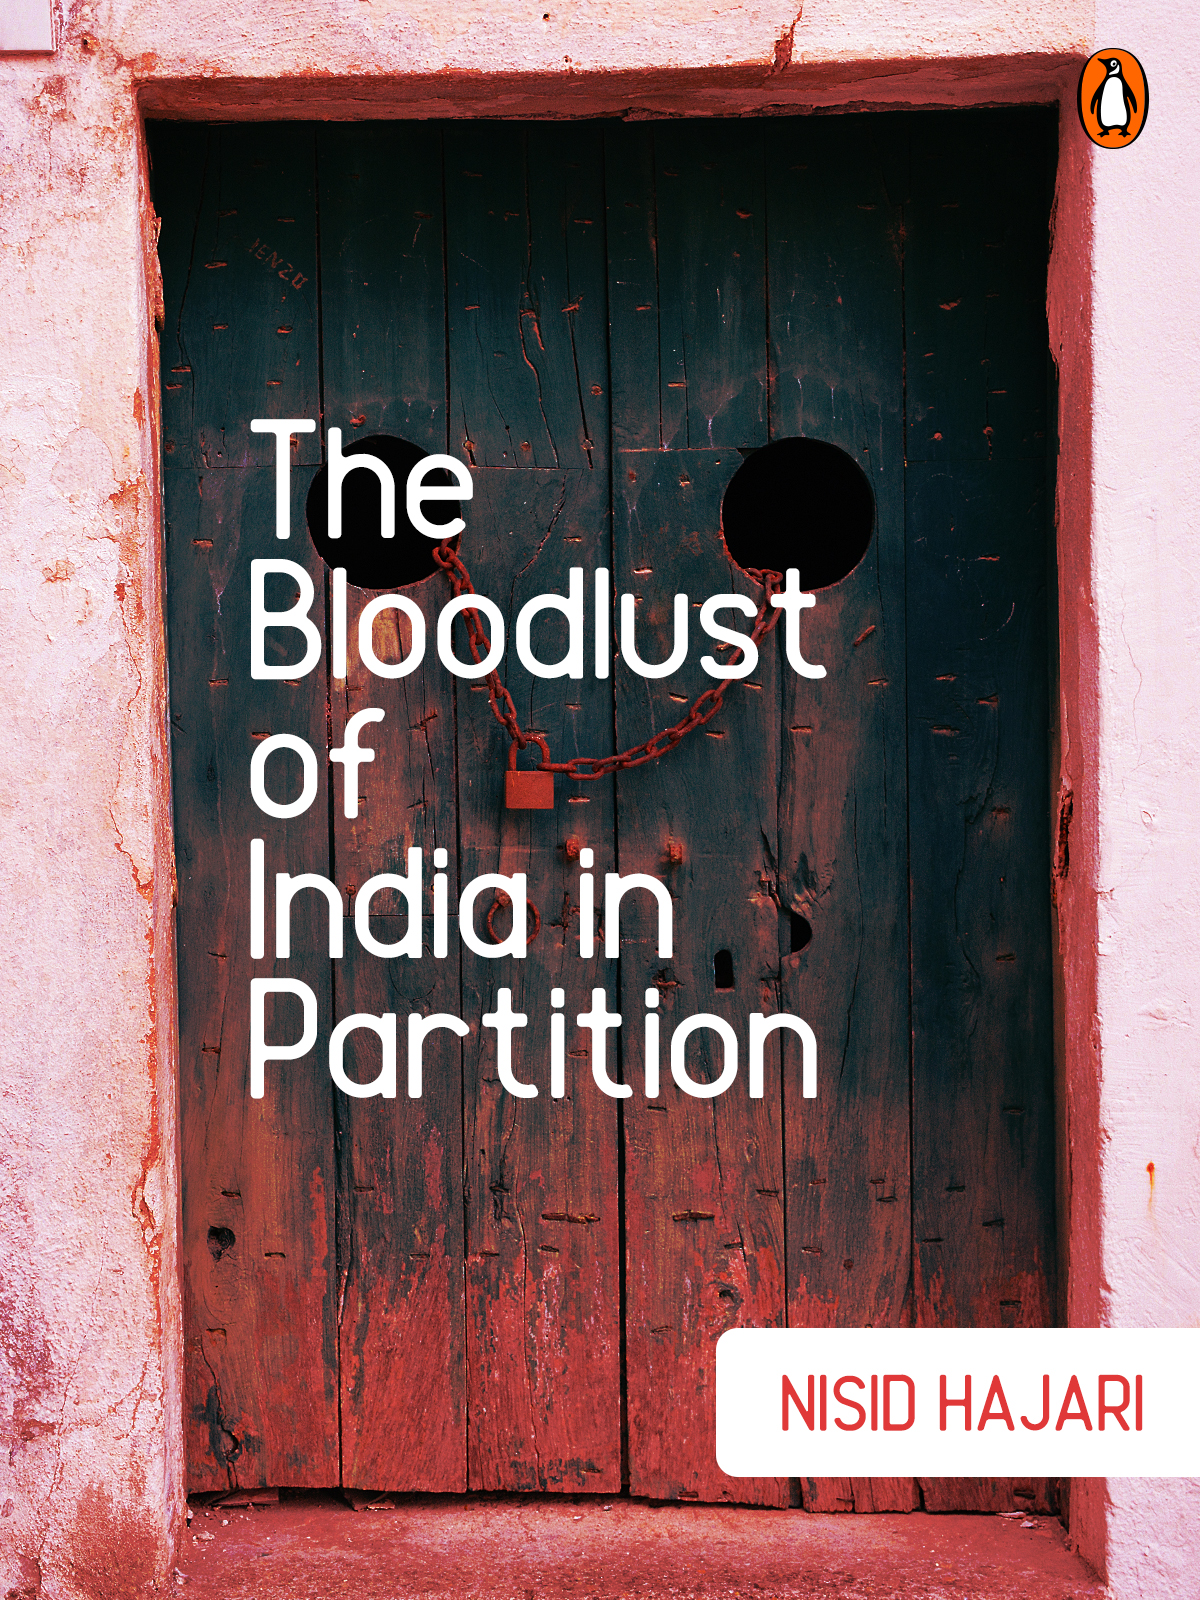 The Bloodlust of India in Partition